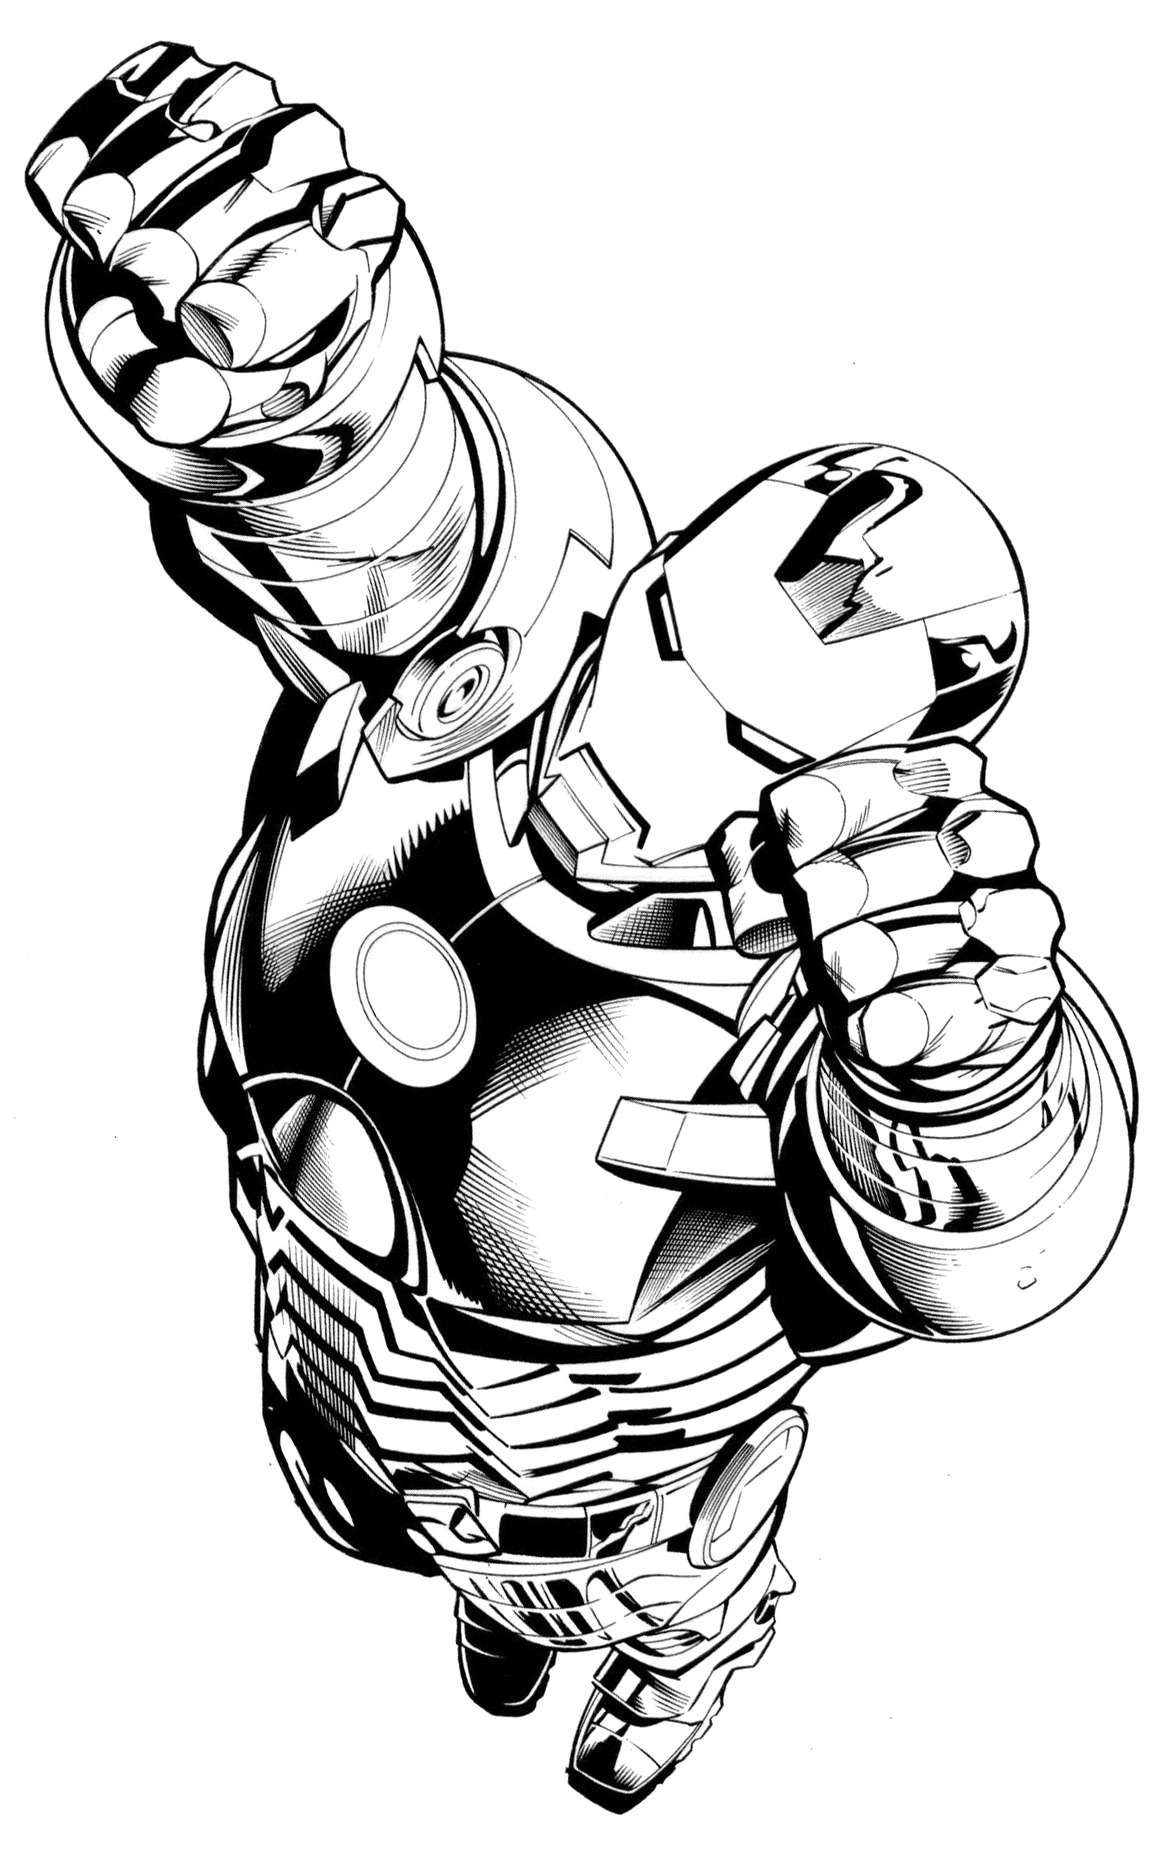 Ink drawing of Iron Man by Drew Geraci.